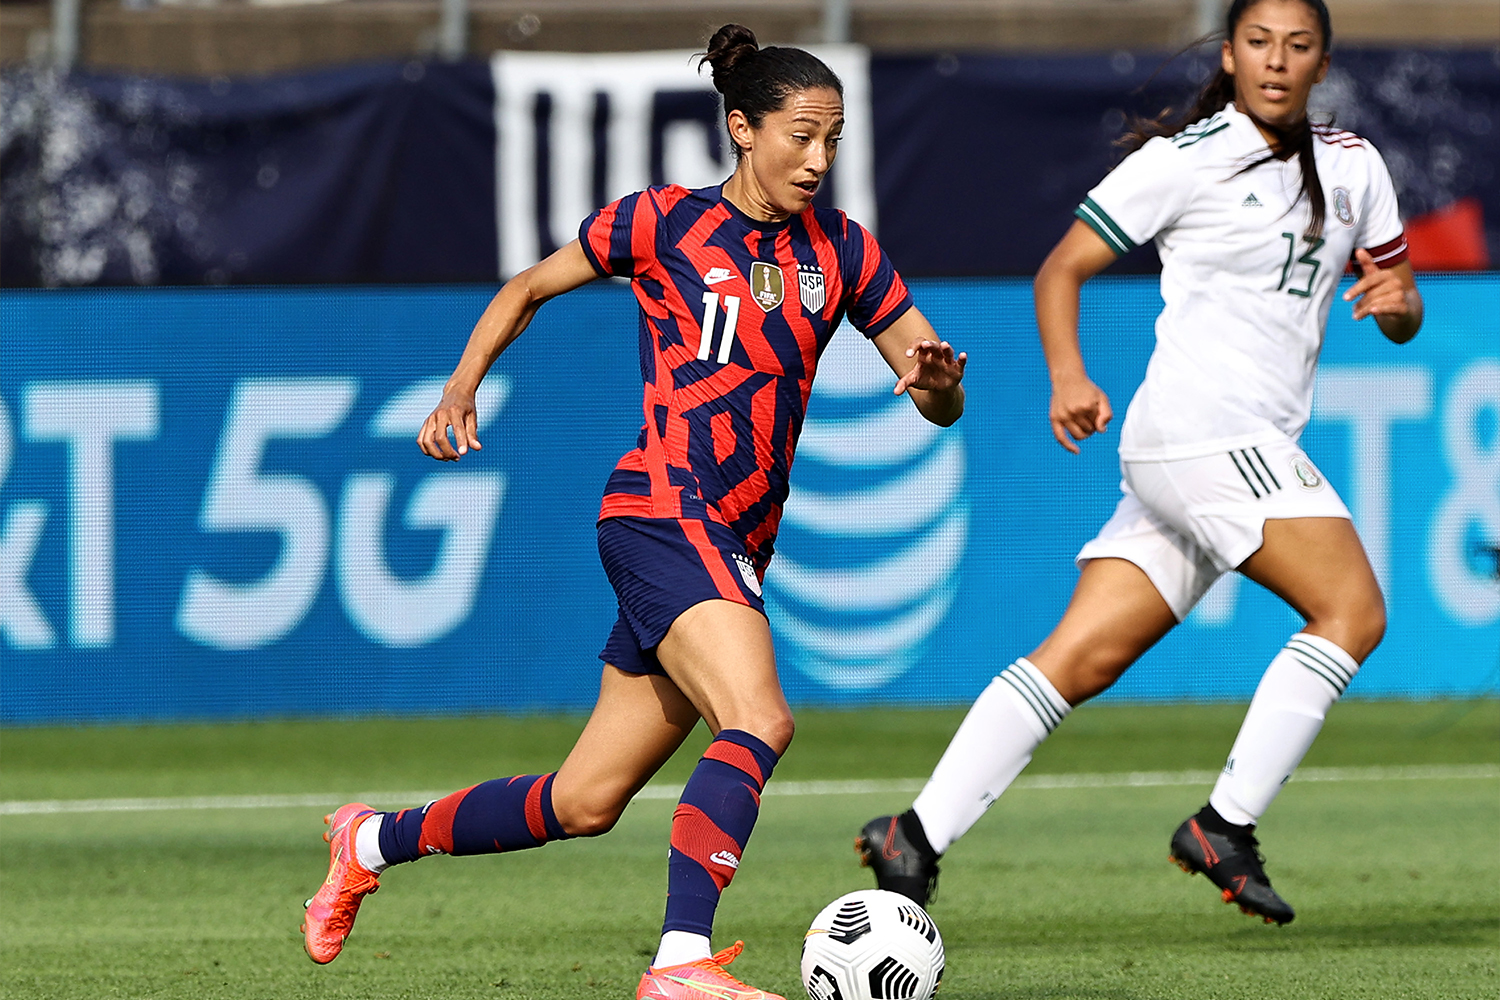 USA soccer star Christen Press in one of the team's new Olympic uniforms